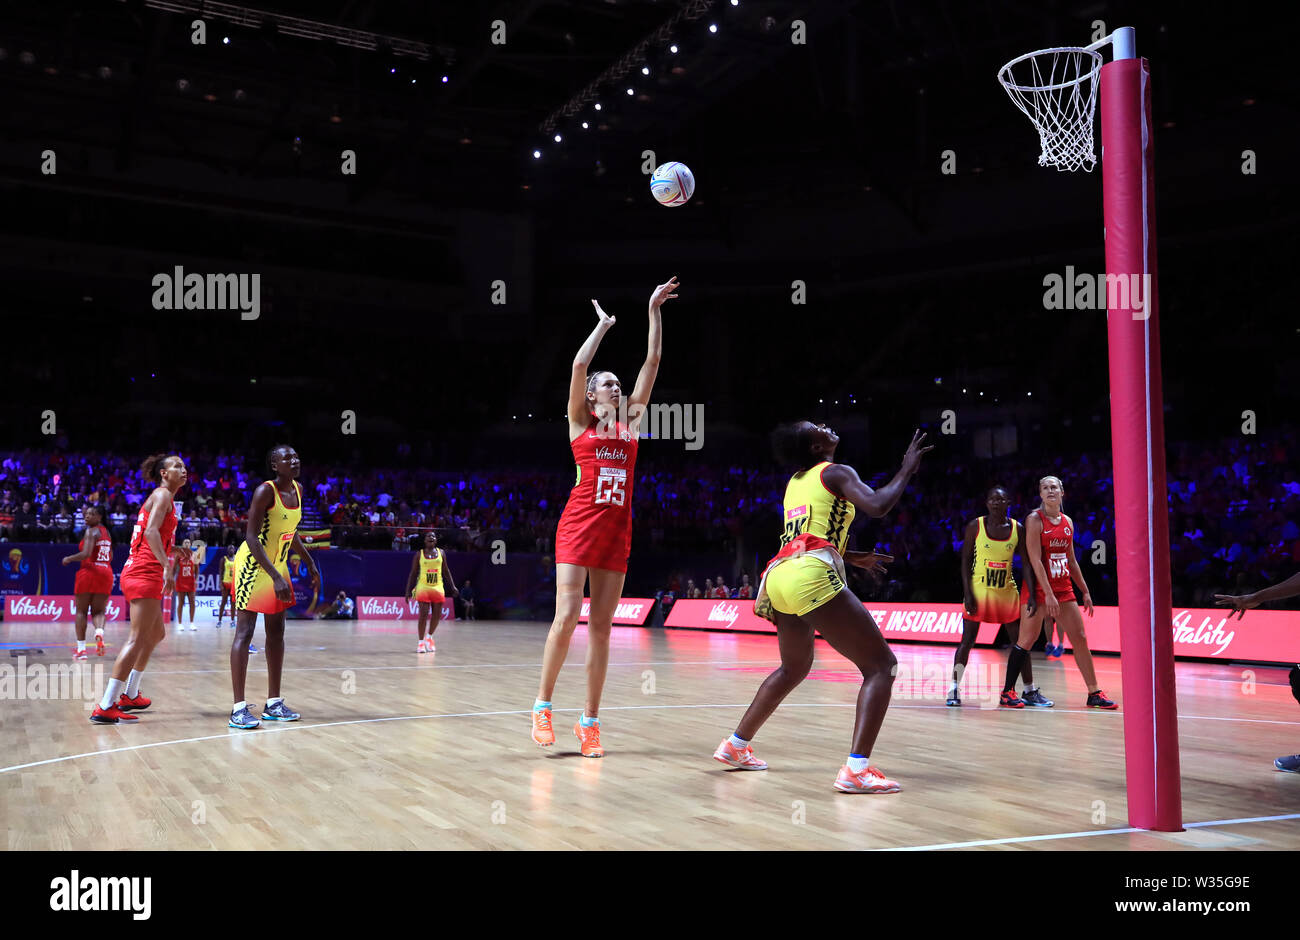 England's Joanne Harten shoots during the Netball World Cup match at the M&S Bank Arena, Liverpool. - Stock Image